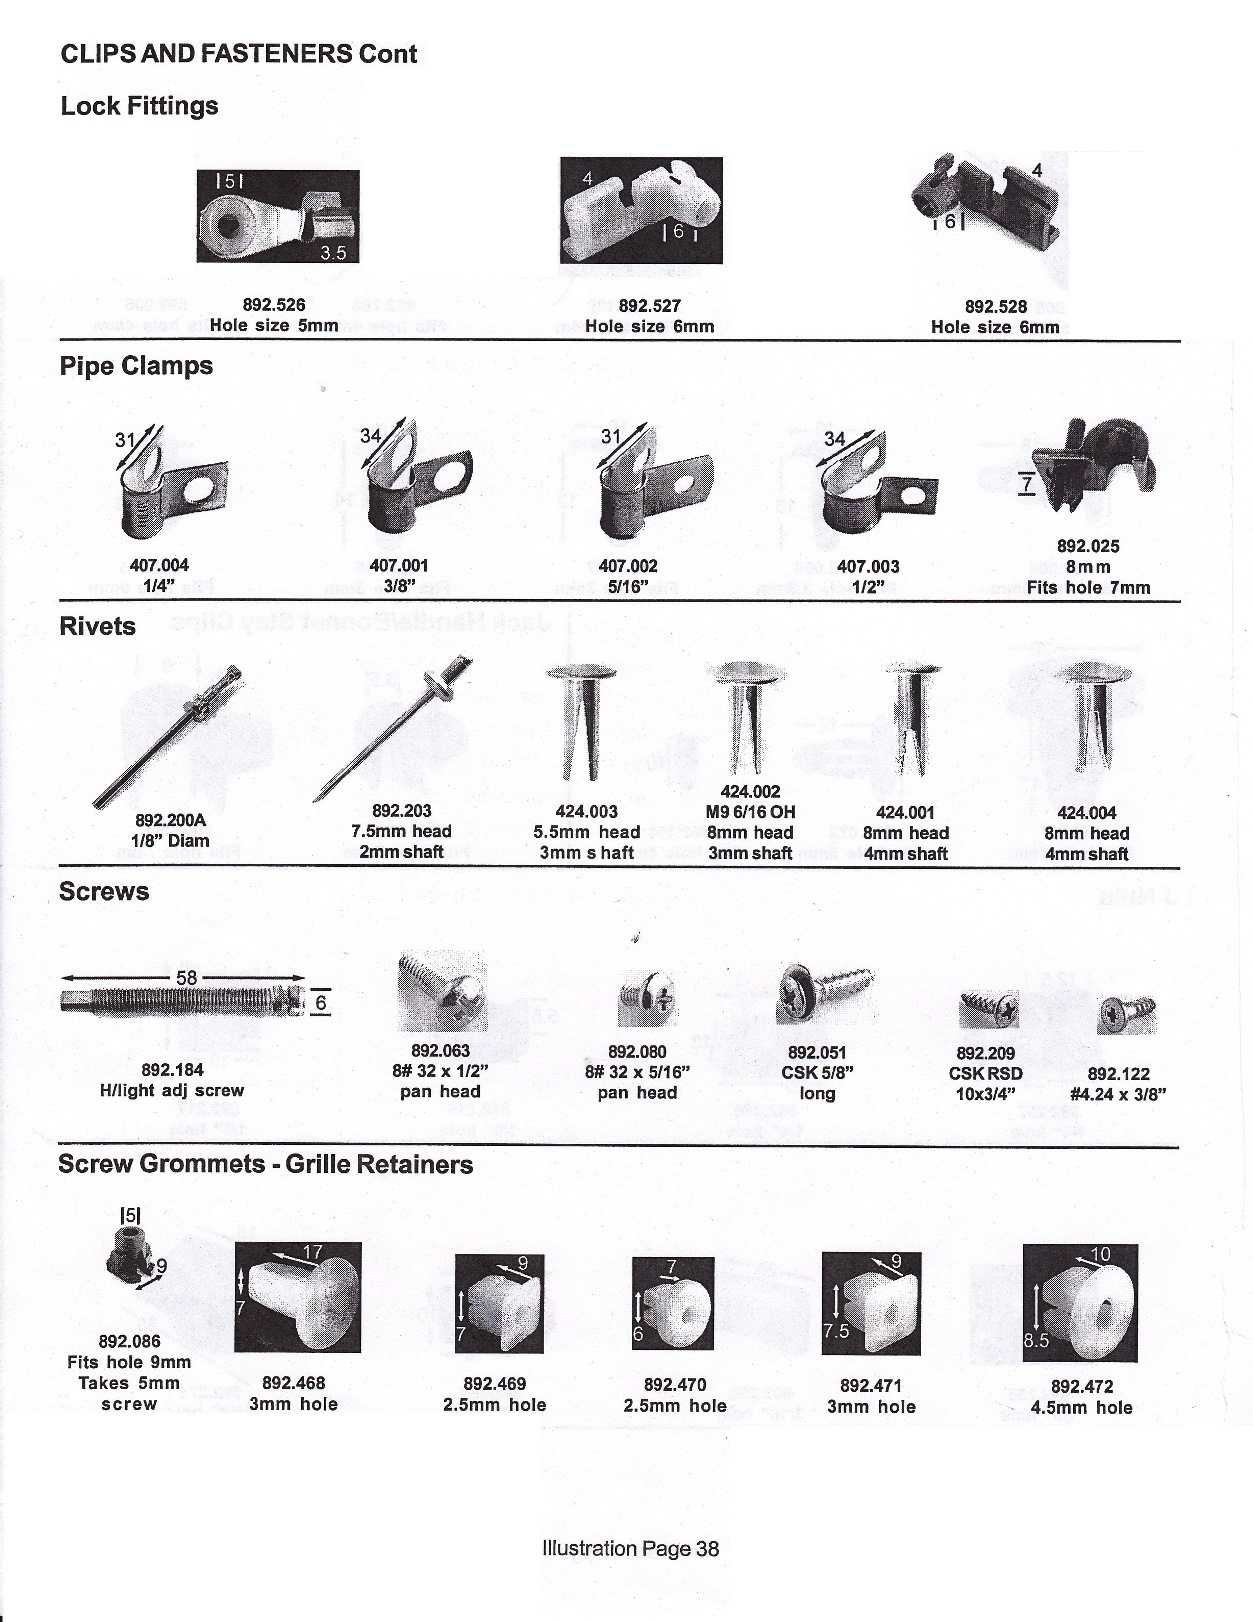 Scott Old Auto Rubber Catalogue